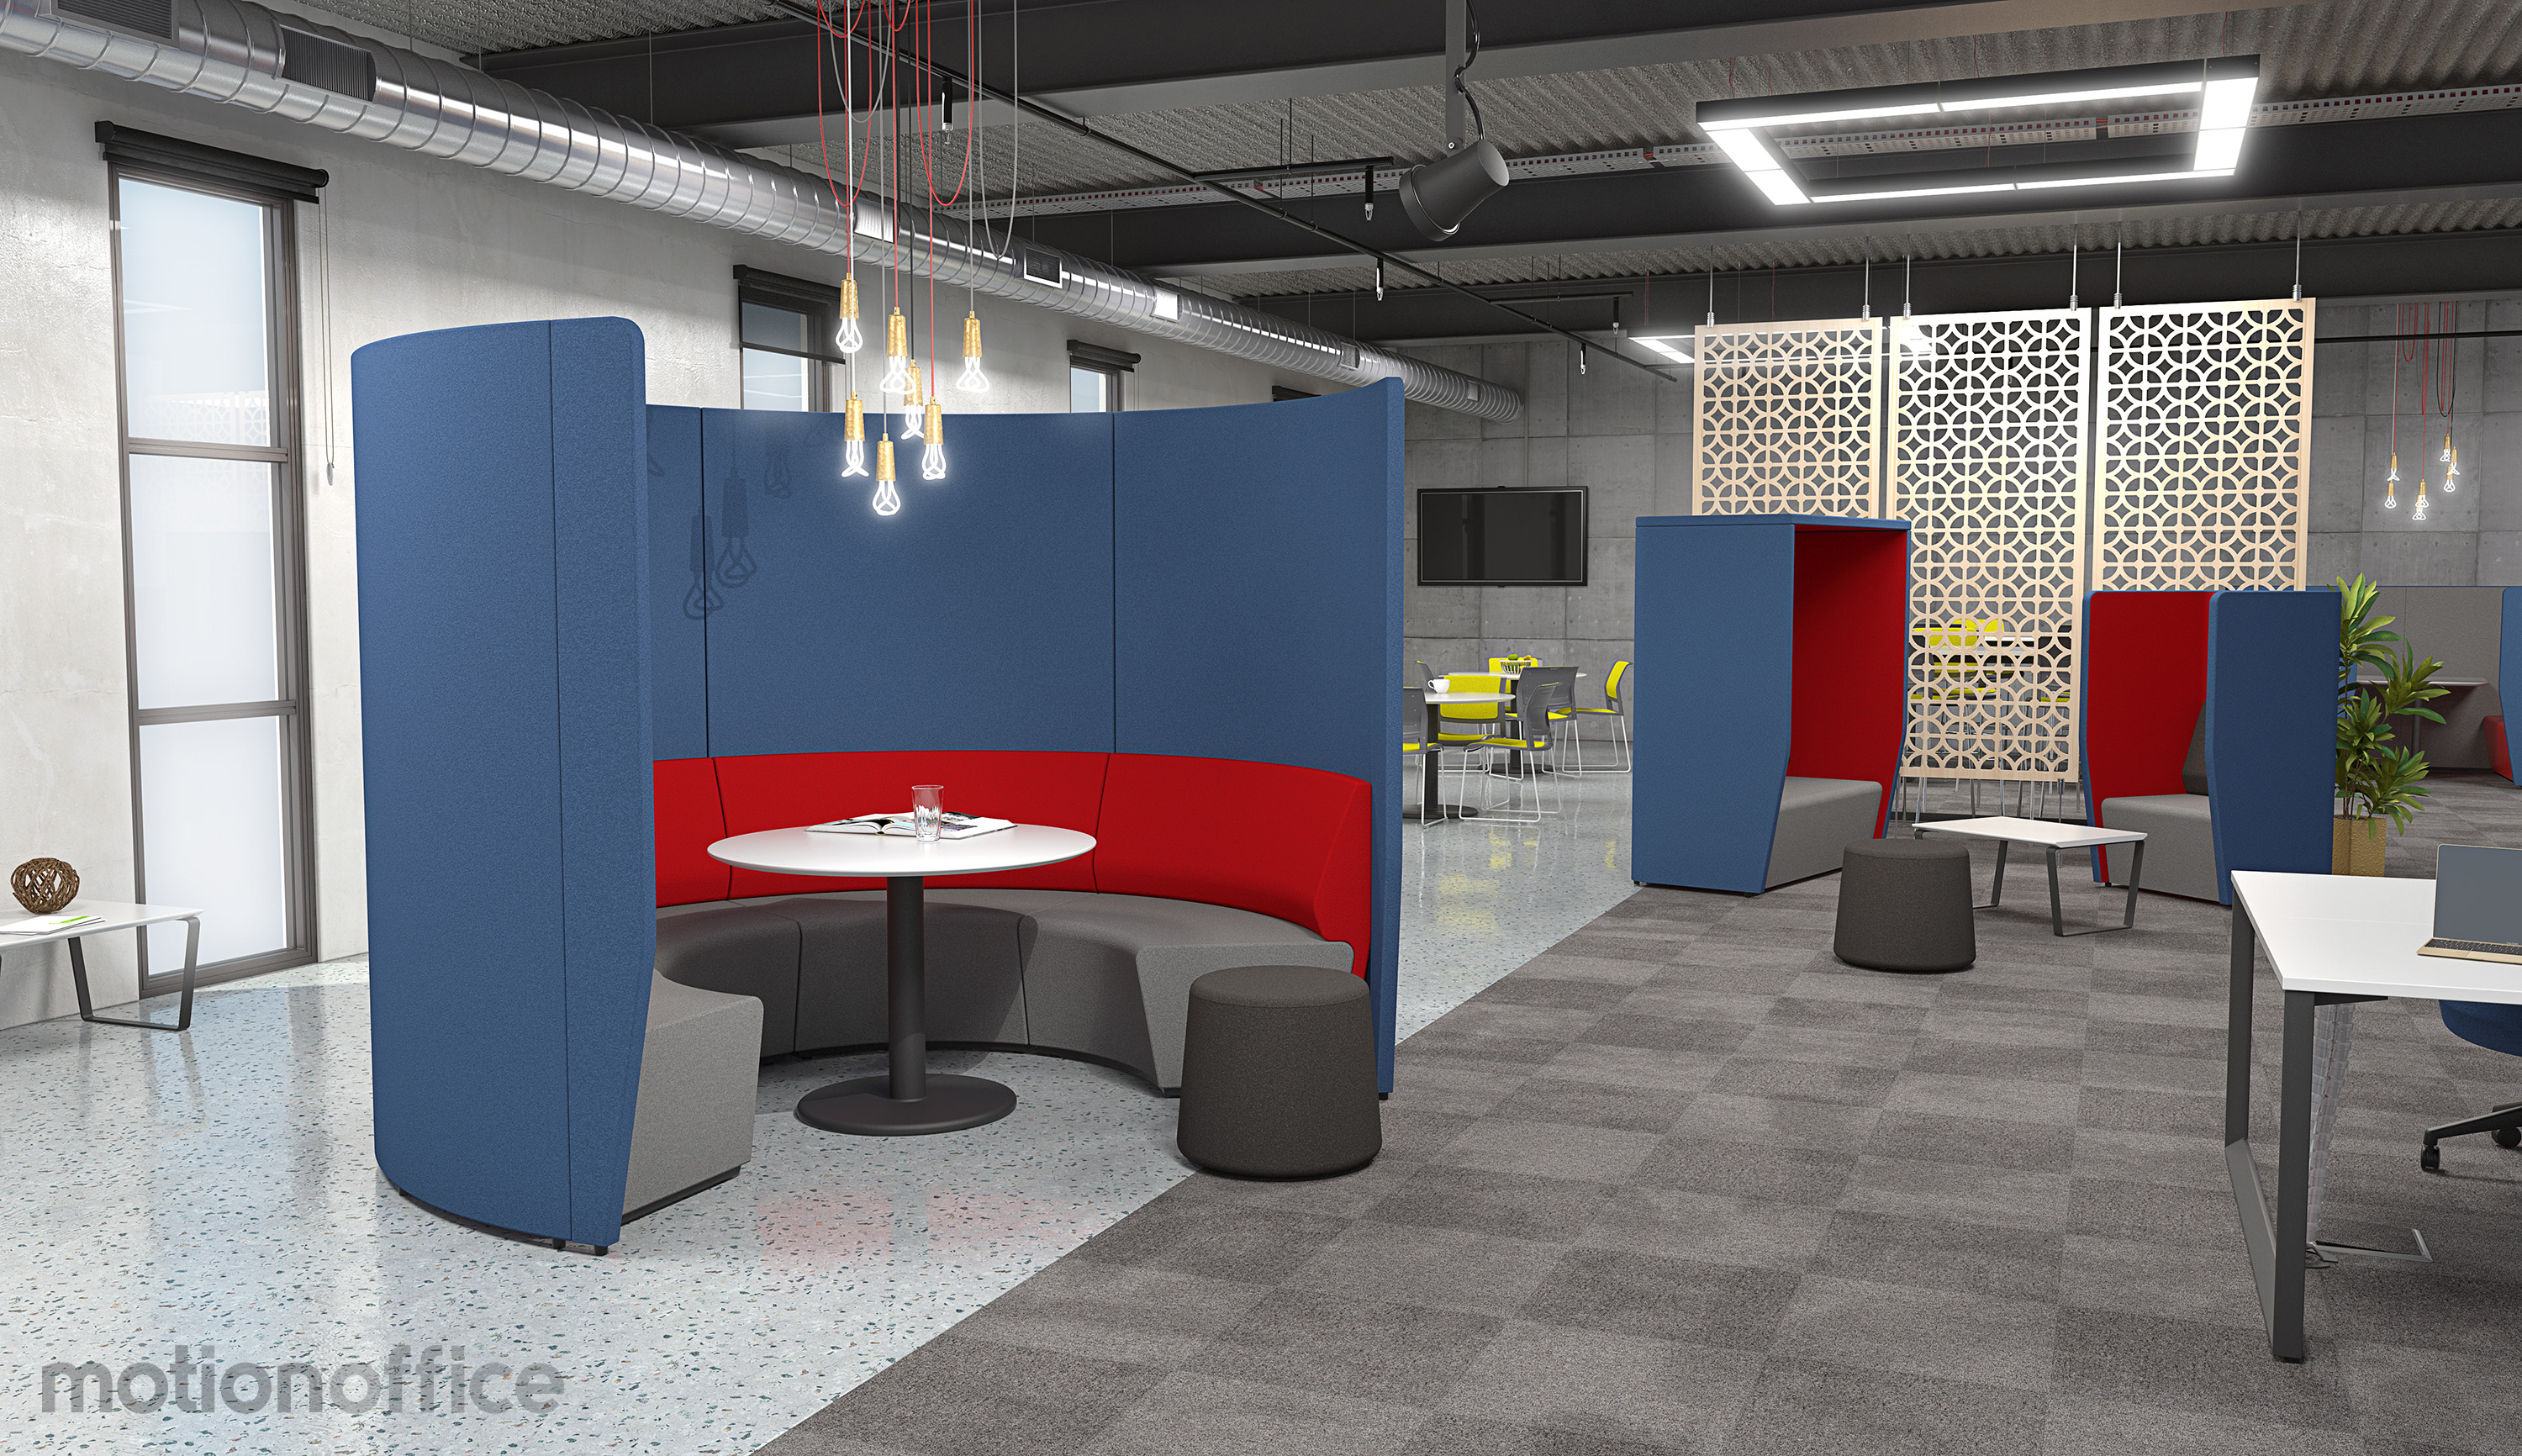 collaboration space - arc